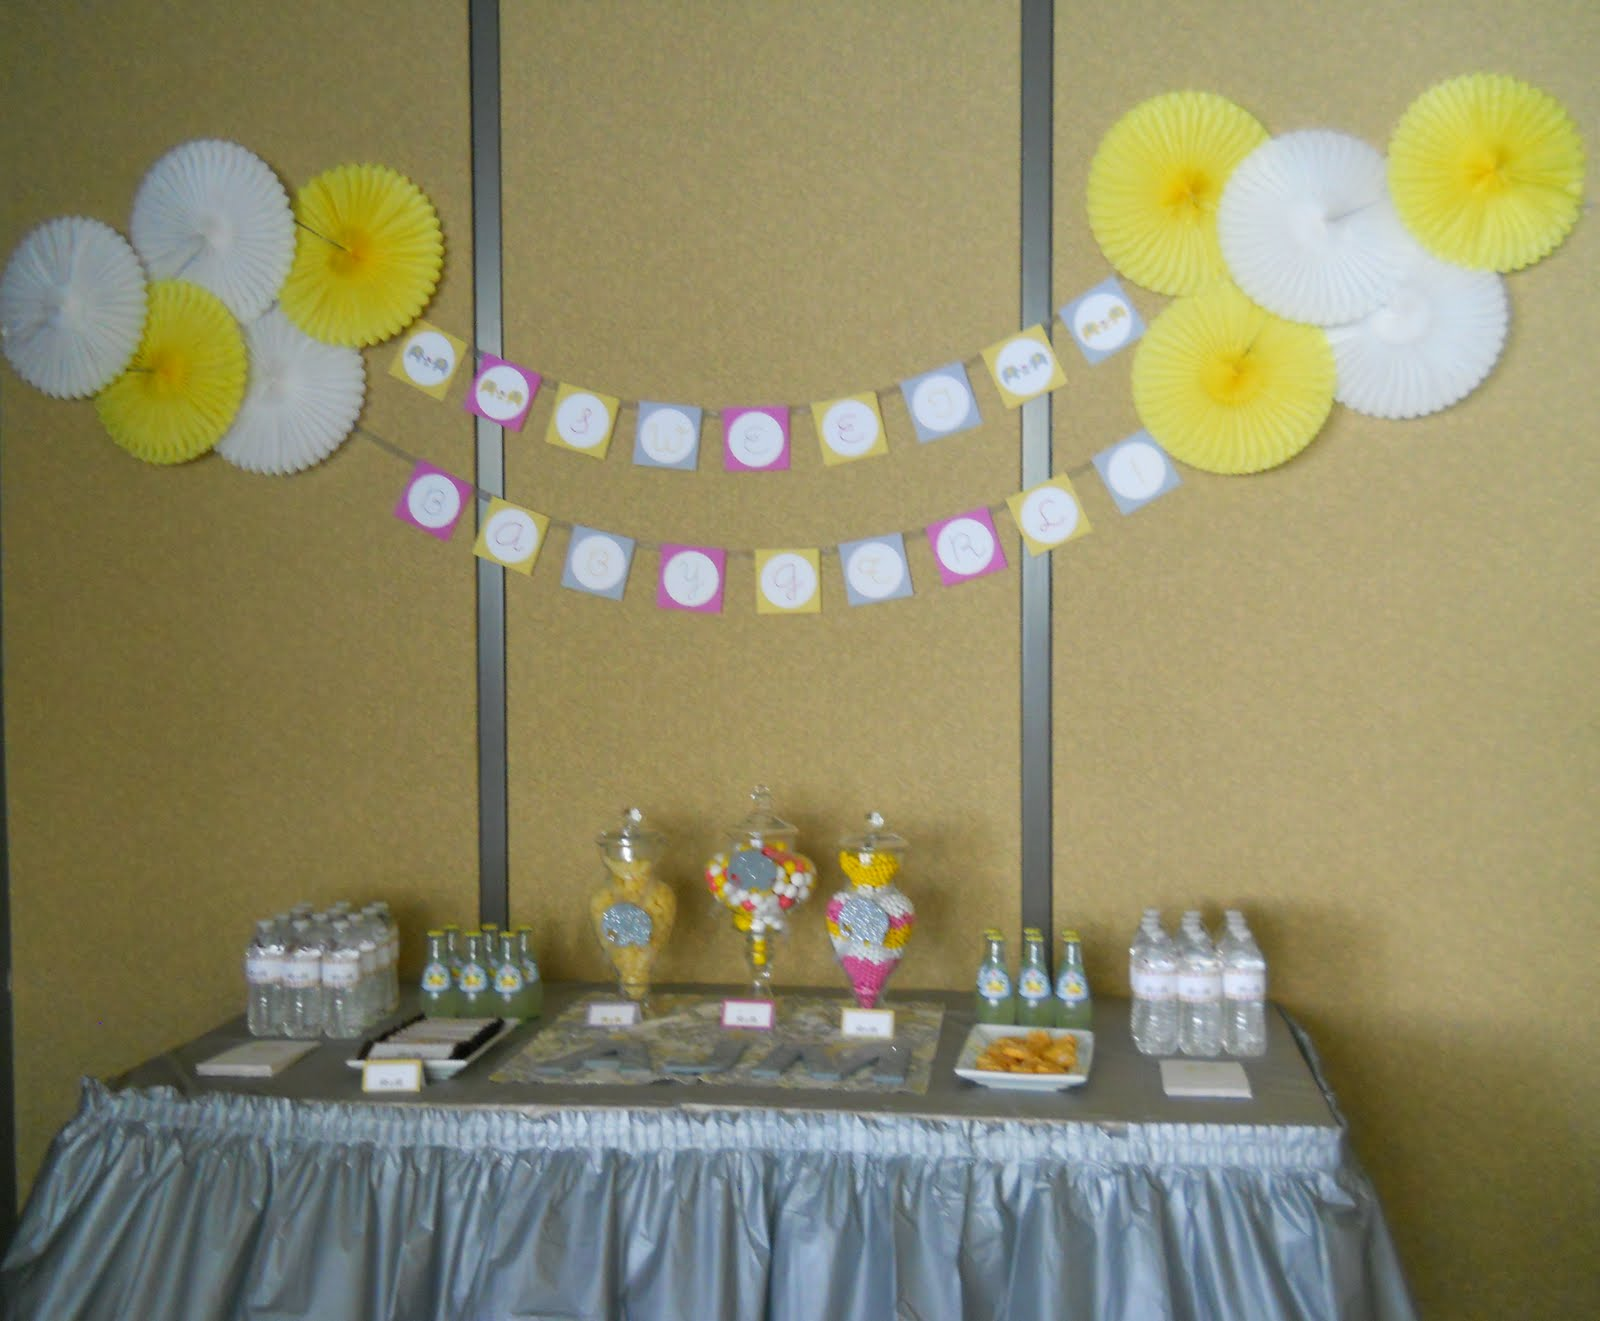 Baby shower decoration ideas interior home design for Baby shower decoration ideas